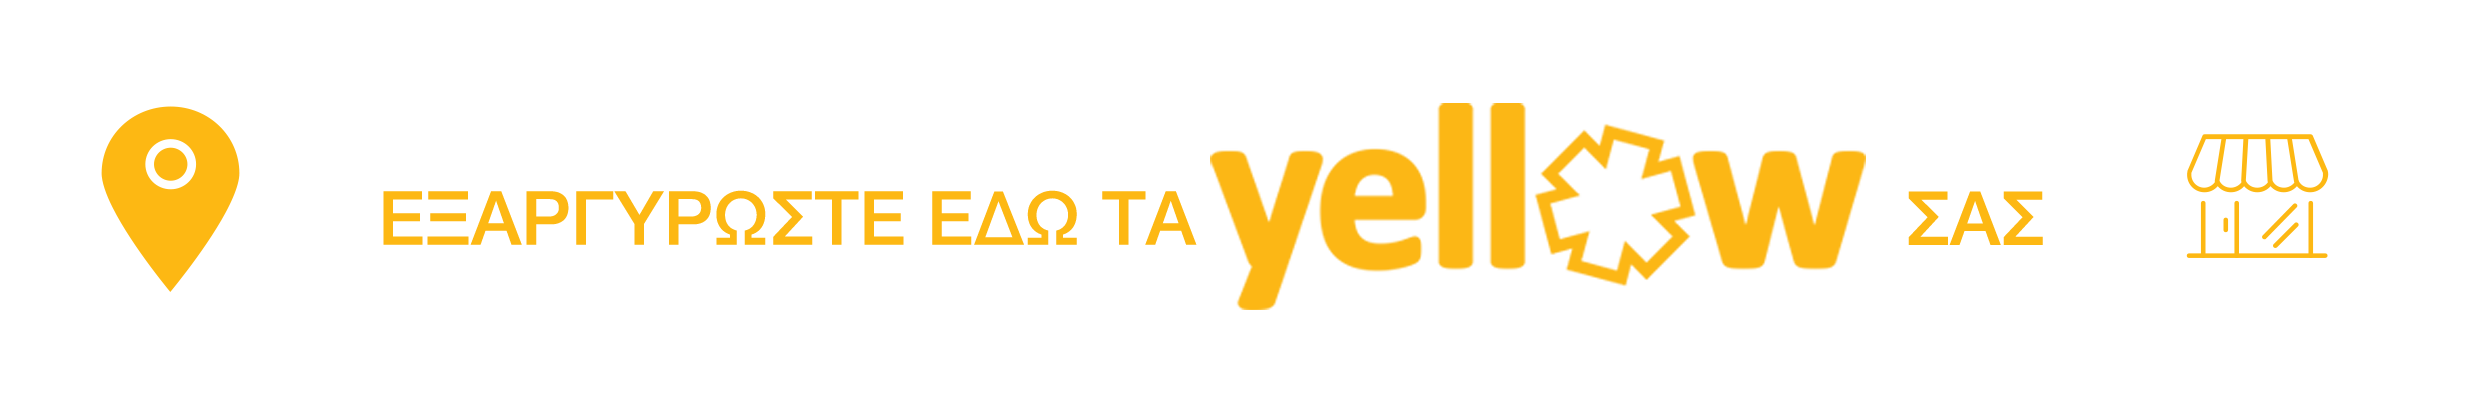 yellows image